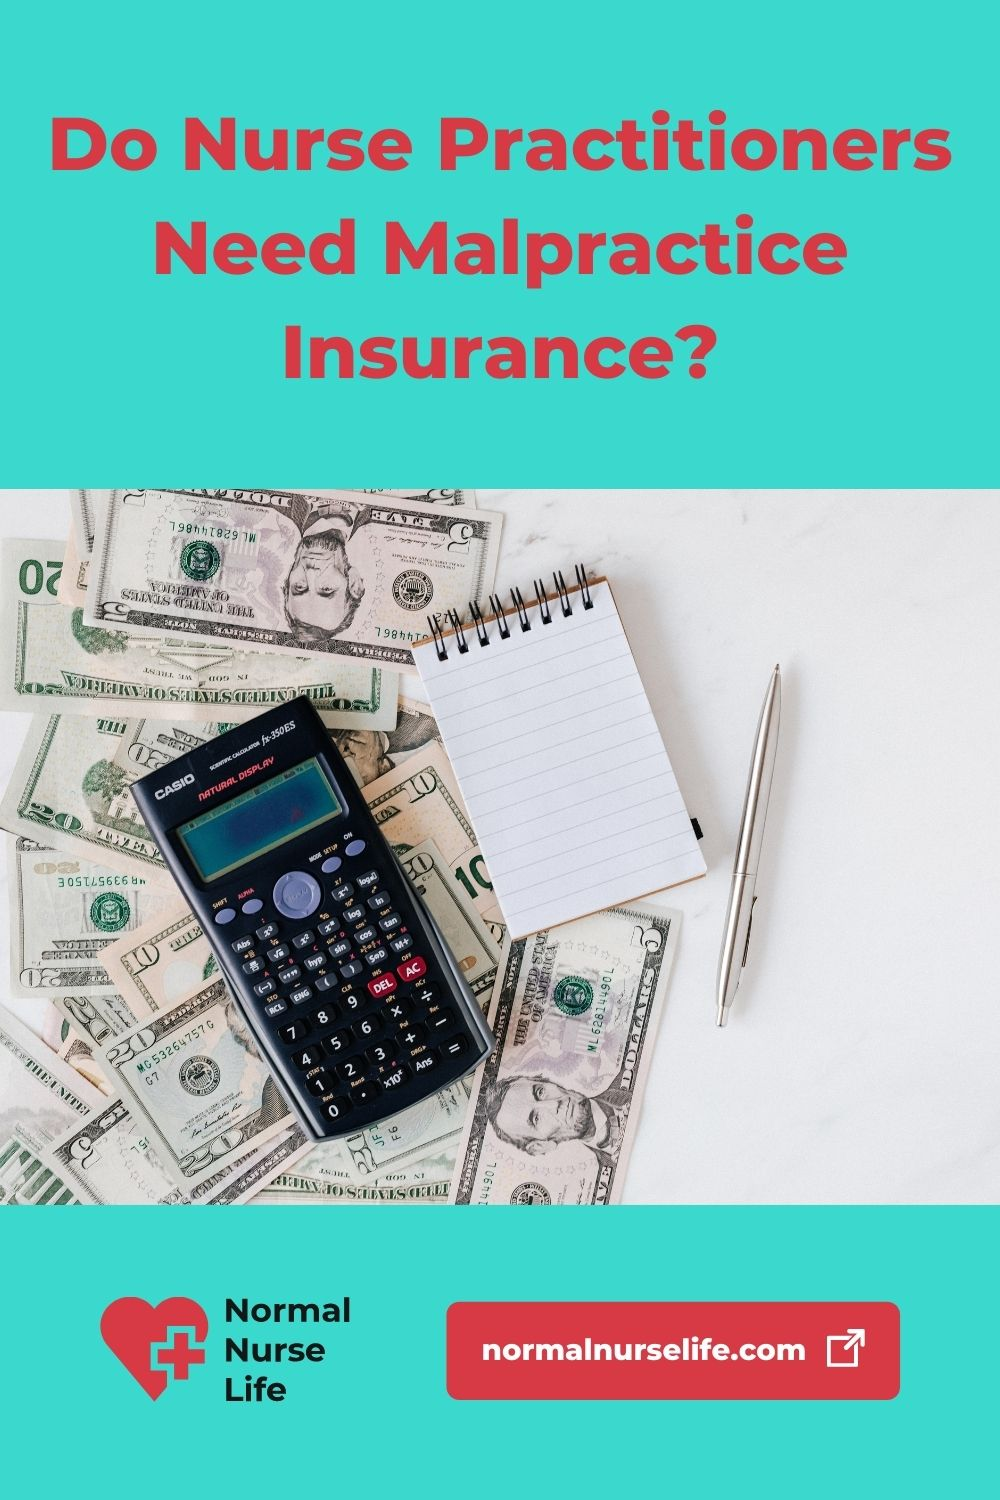 Do nurse practitioners need malpractice insurance or not